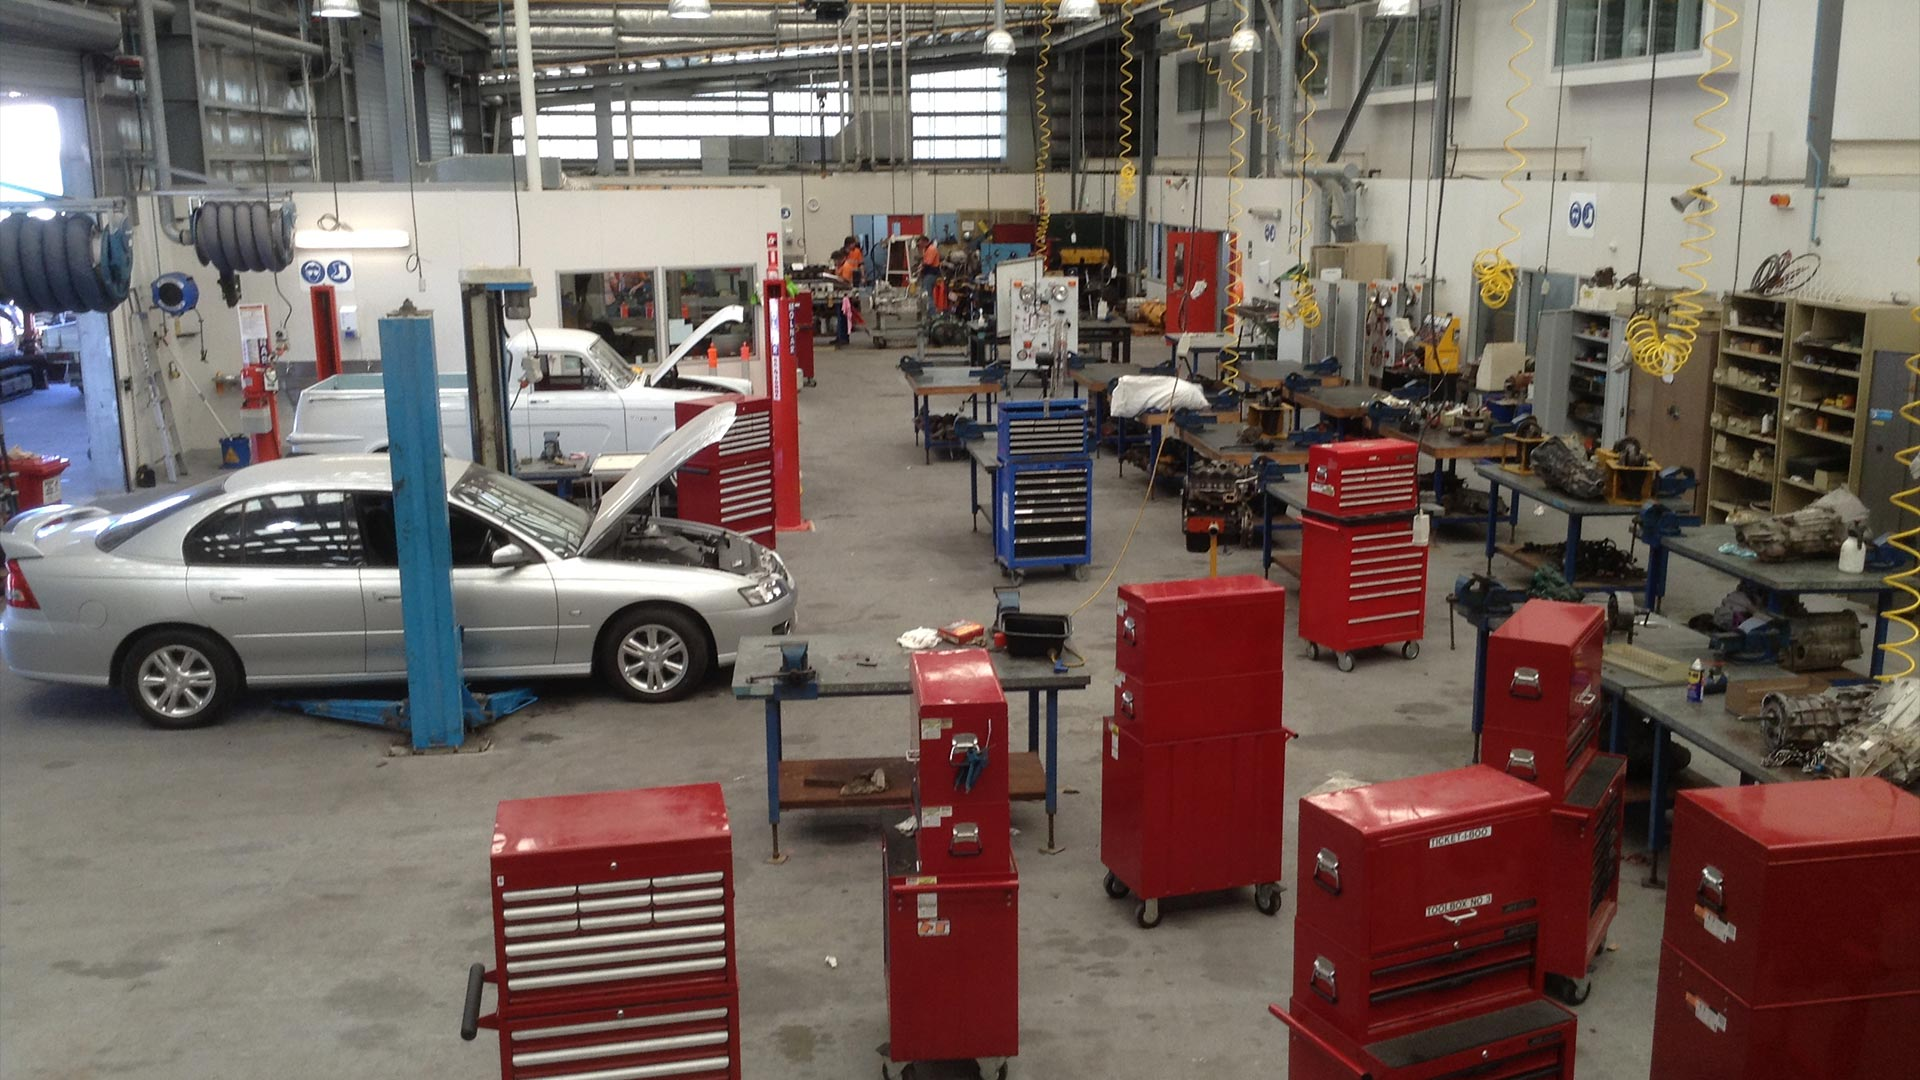 townsville-facilities-trade-facilities-automotive-workshops-01.jpg